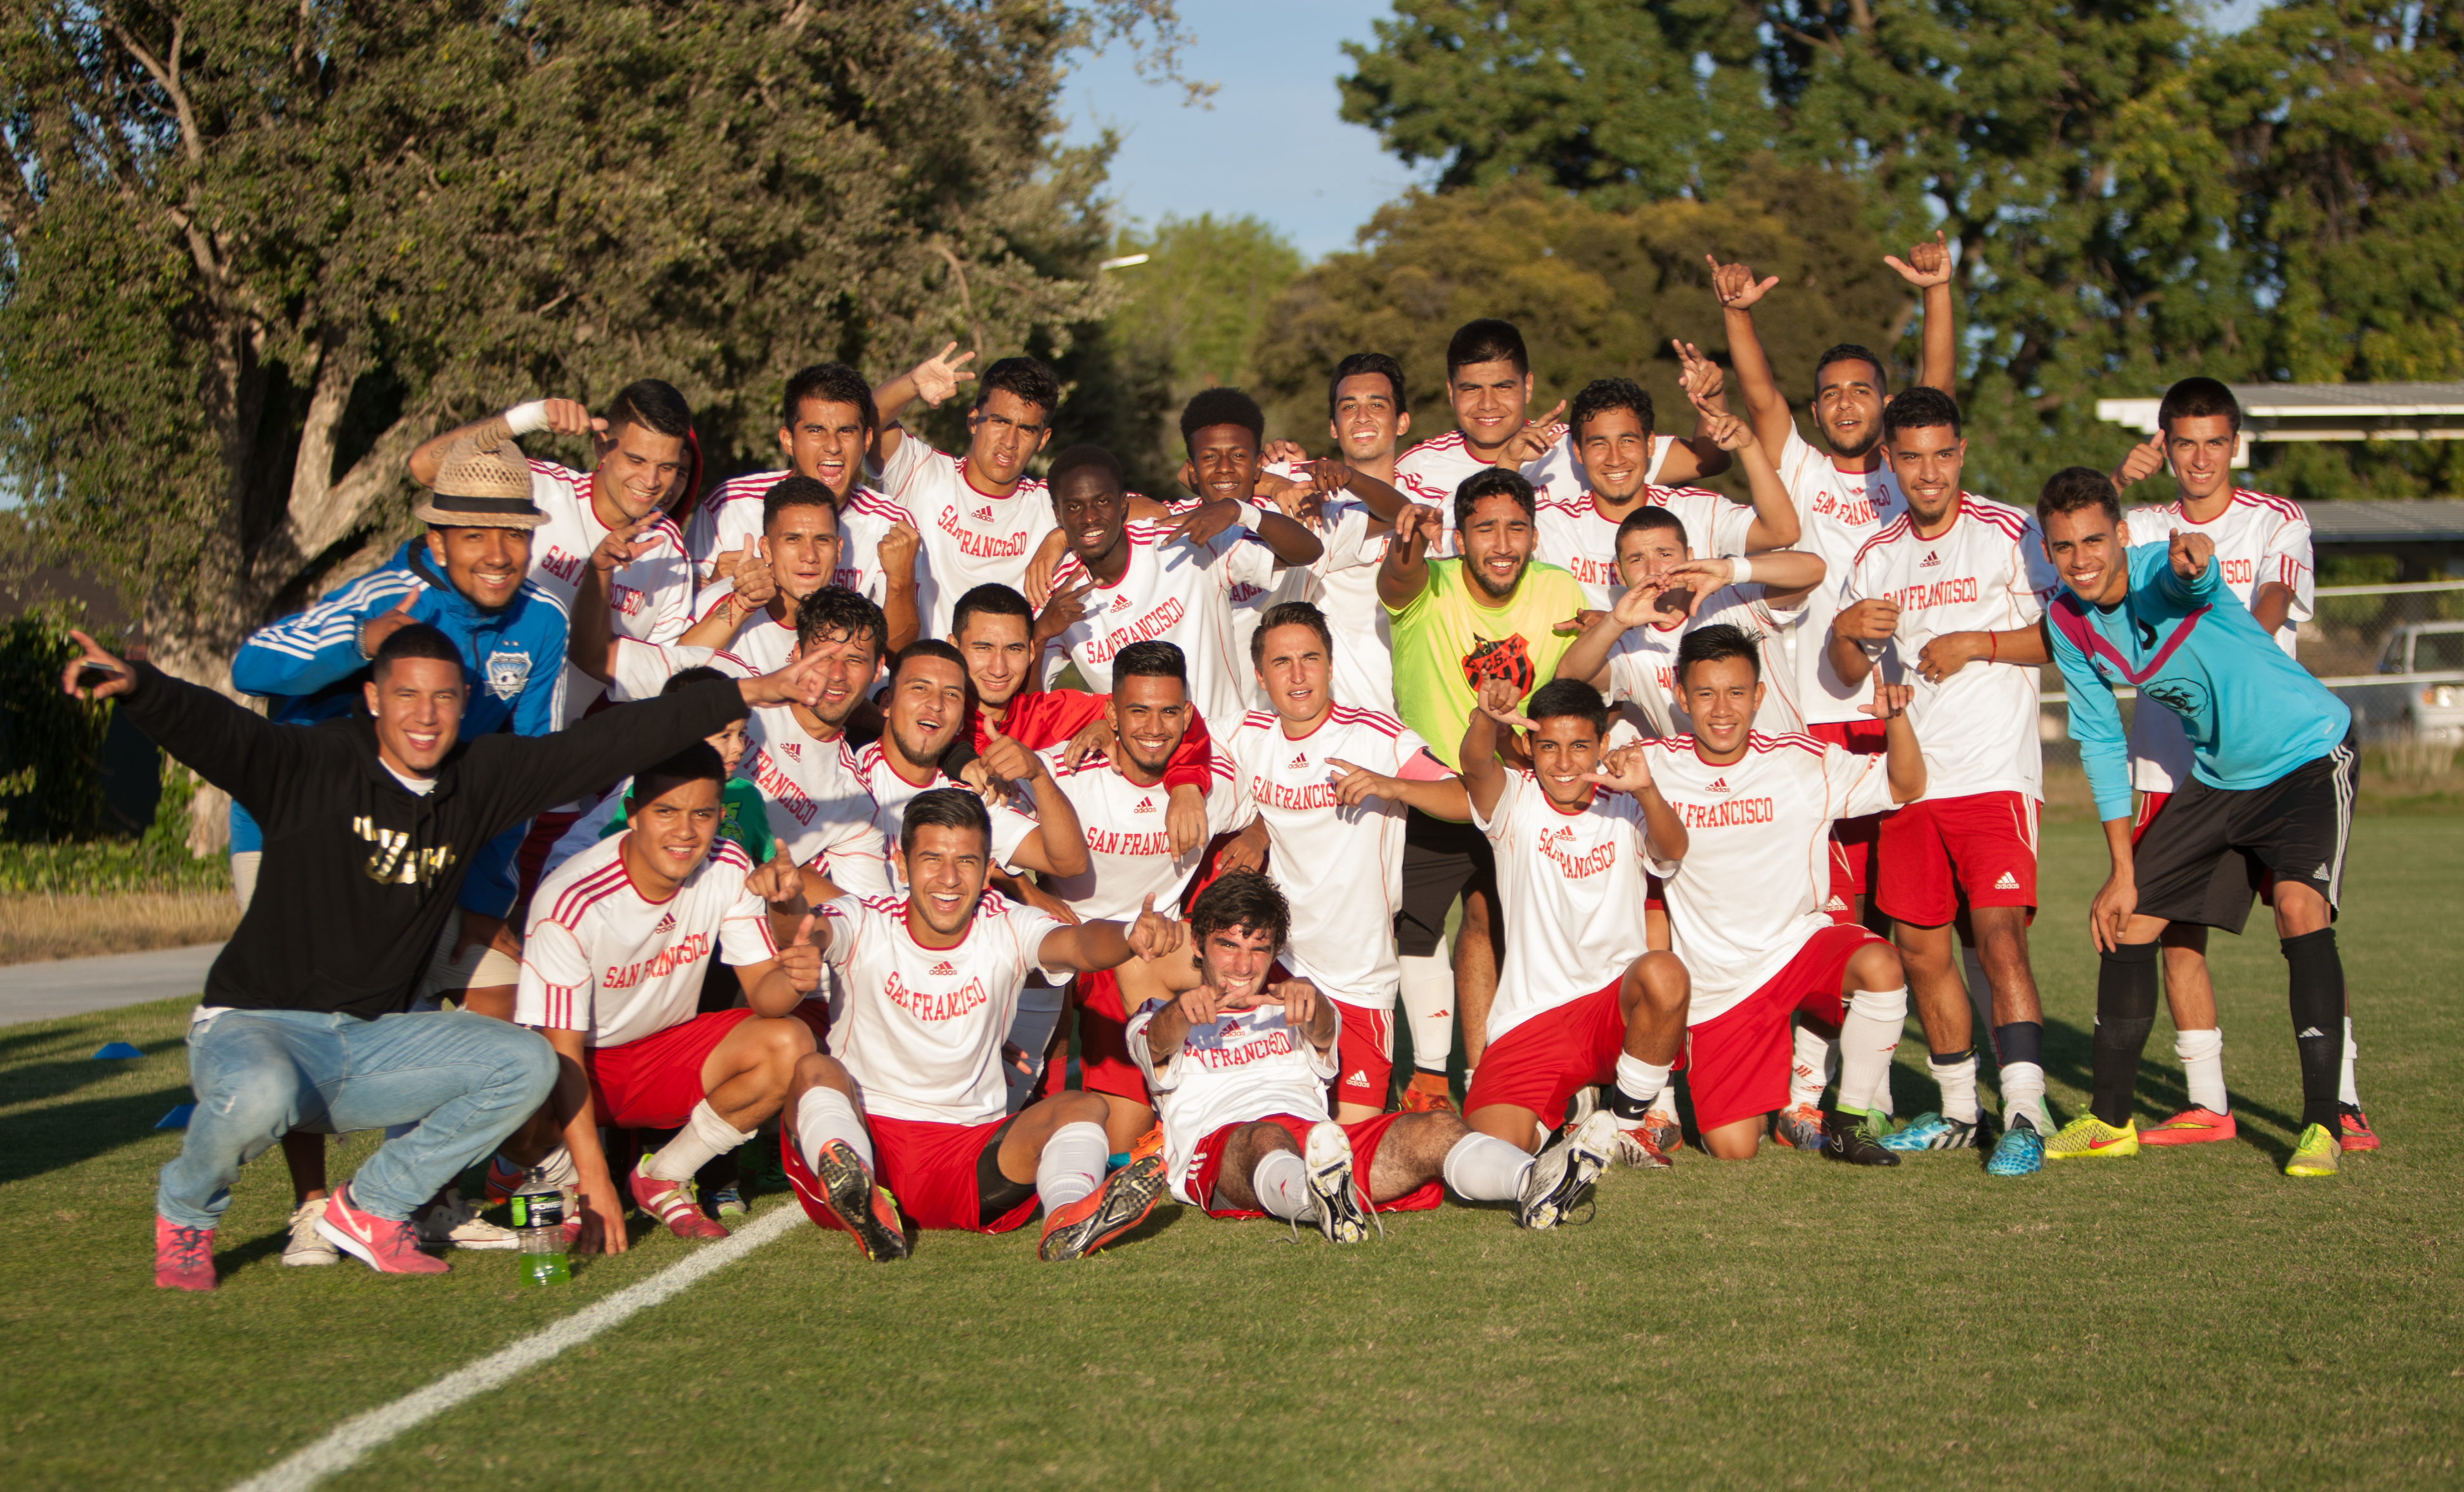 City College Rams celebrate the win, Friday, Oct. 10. (Photo by Khaled Sayed)